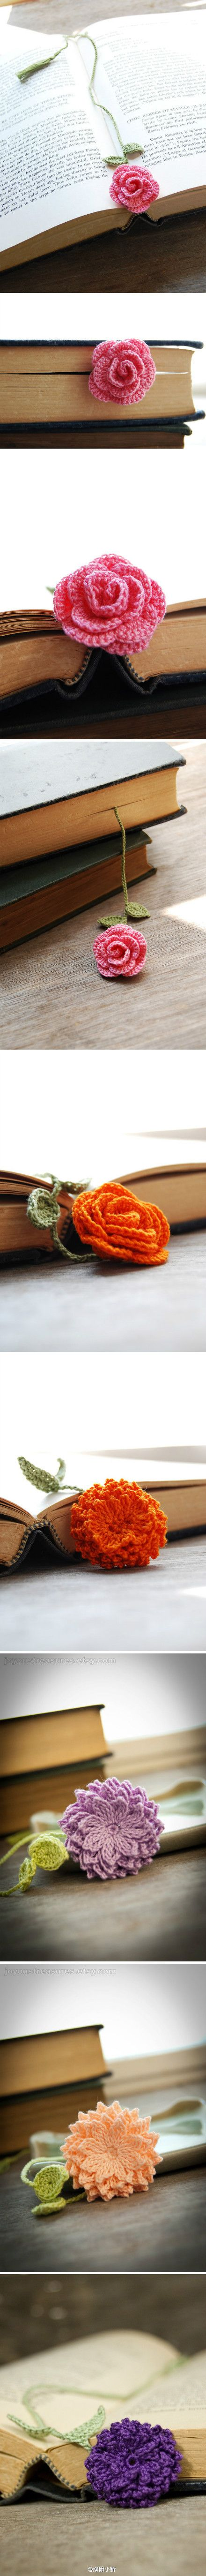 Pretty bookmarks - crochet flowers. Choose your favorite crochet flower pattern and color++ GANCHILLO FLORES PUNTO DE LIBRO INSPIRACION